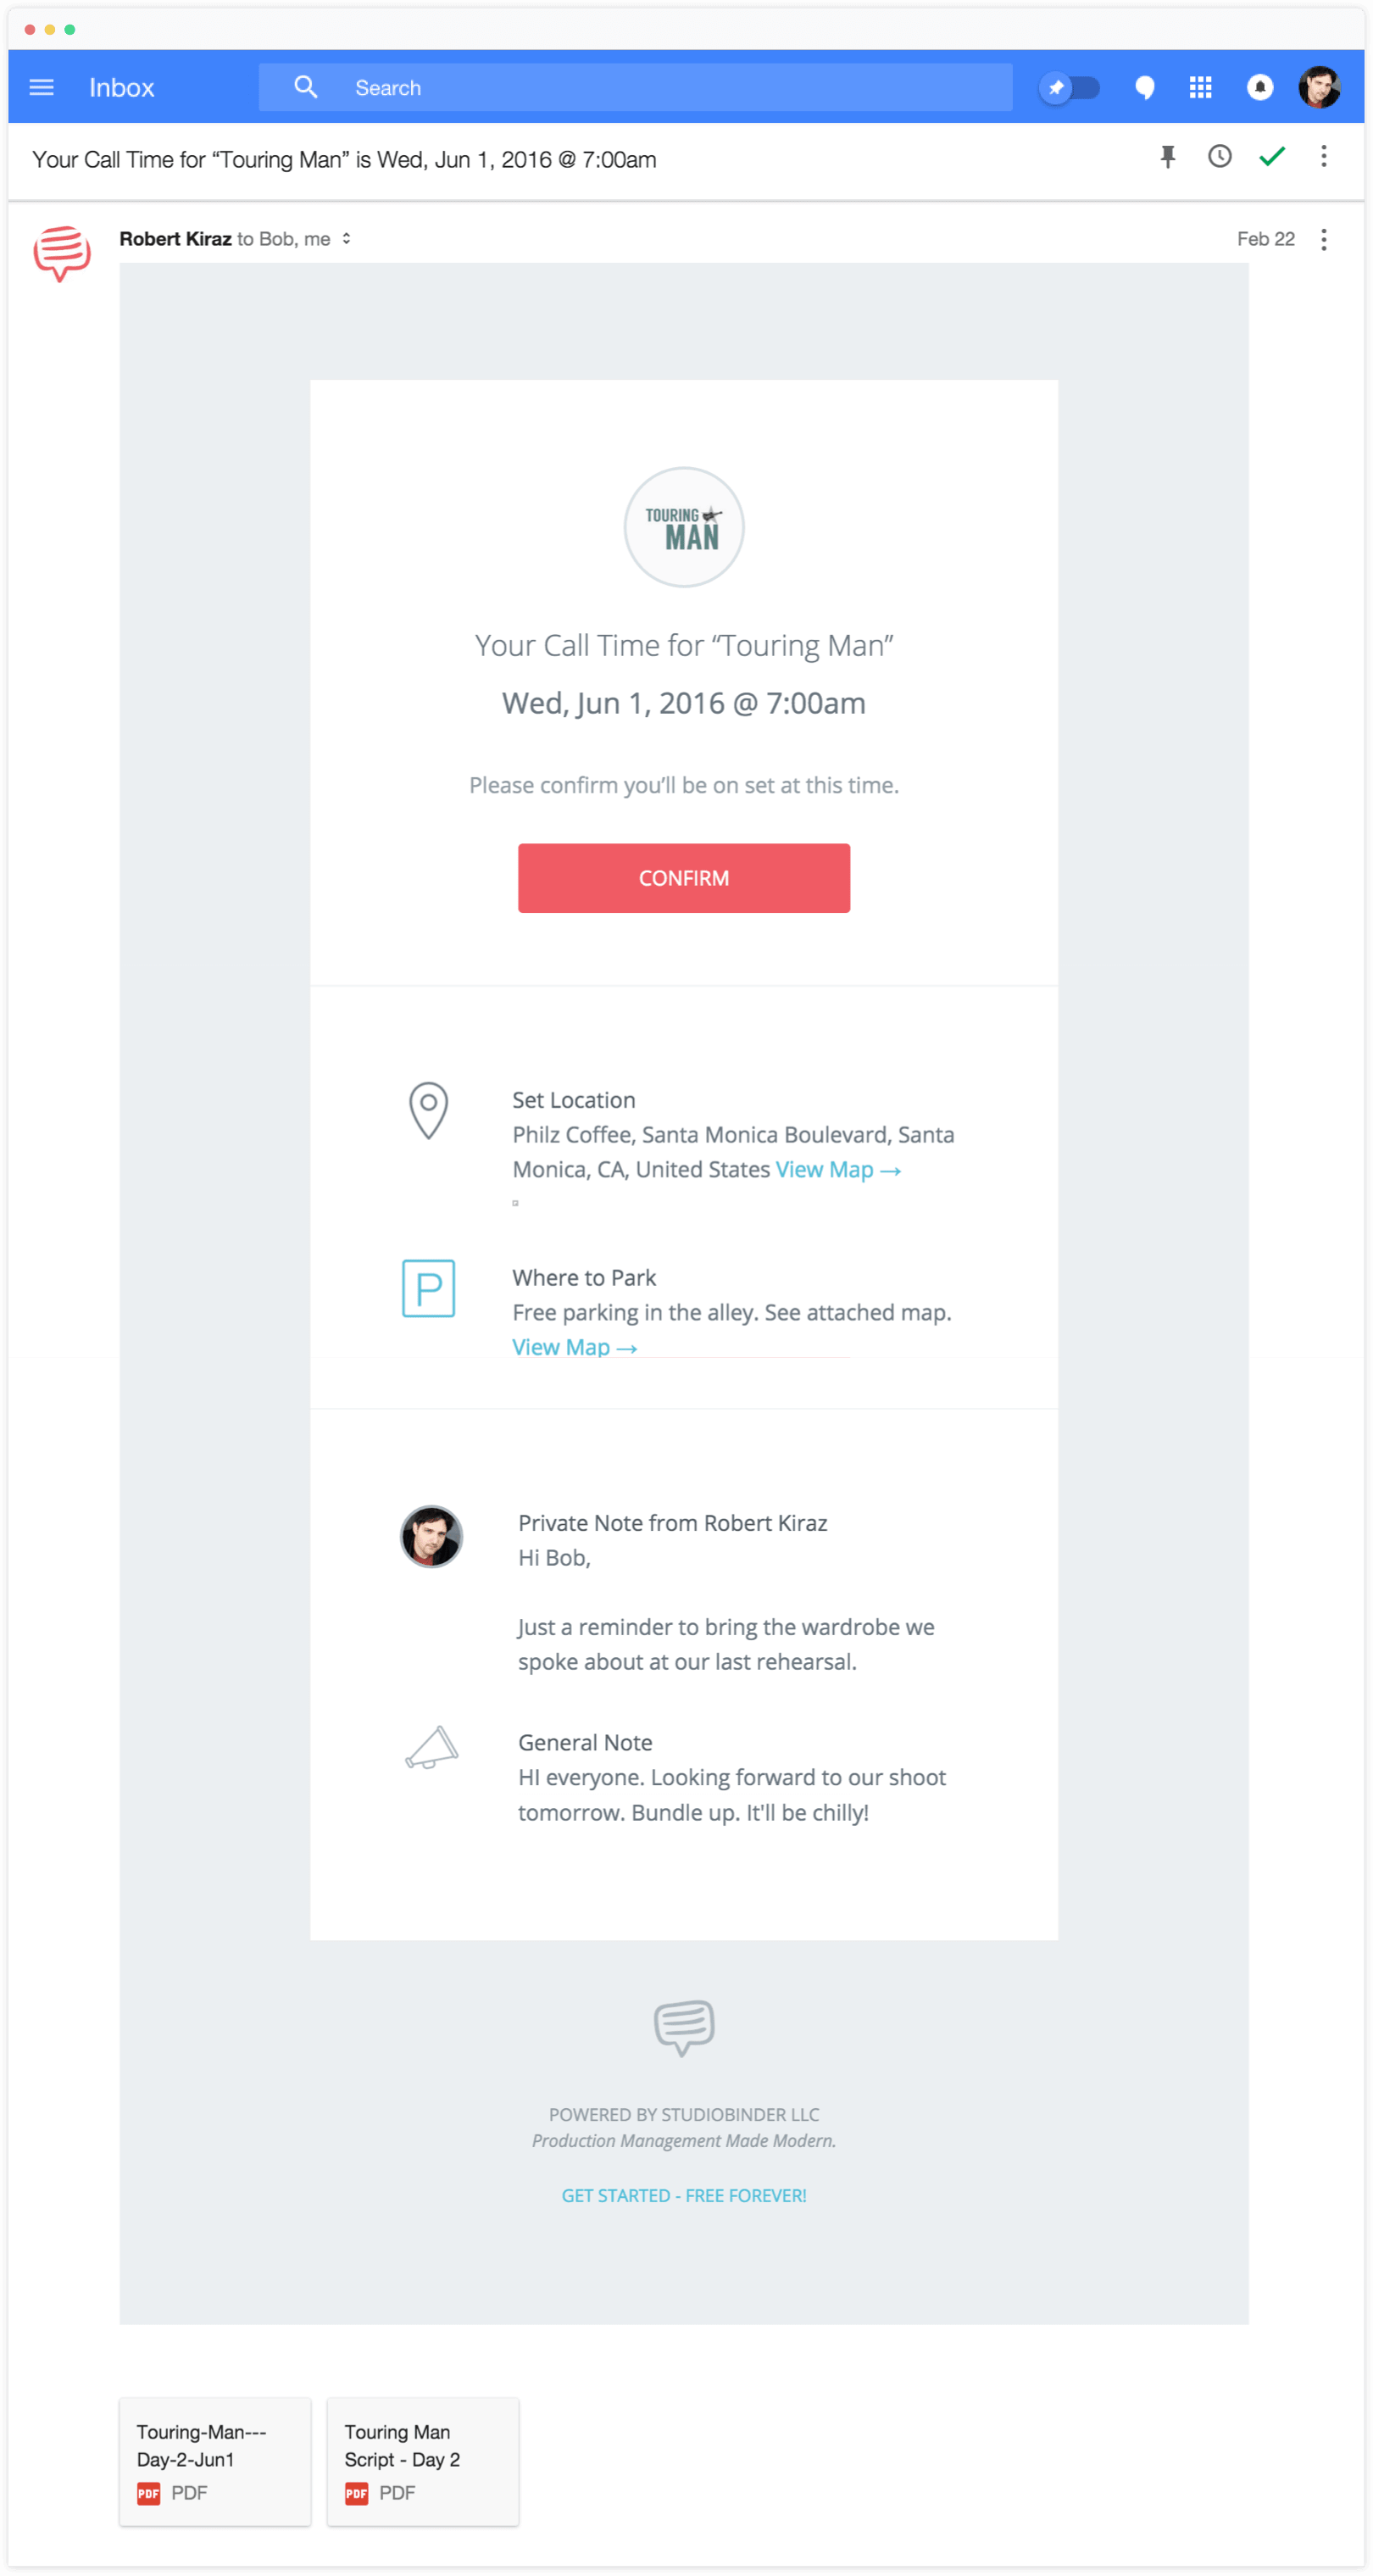 Call Sheet Template in Email Form - StudioBinder